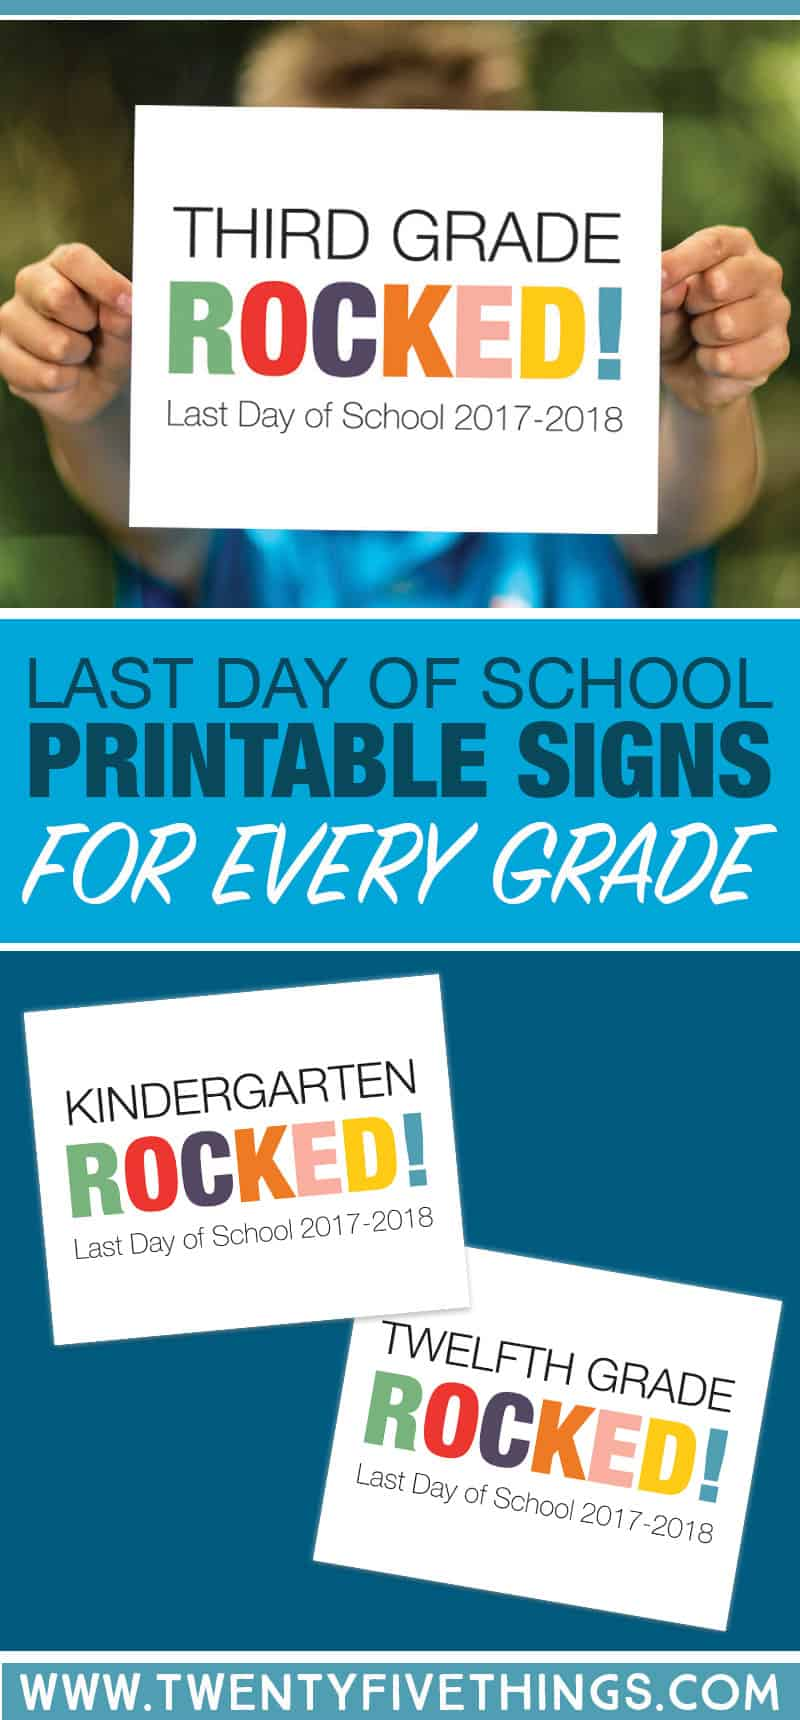 Print your own last day of school signs for fun photo ops with the kids!